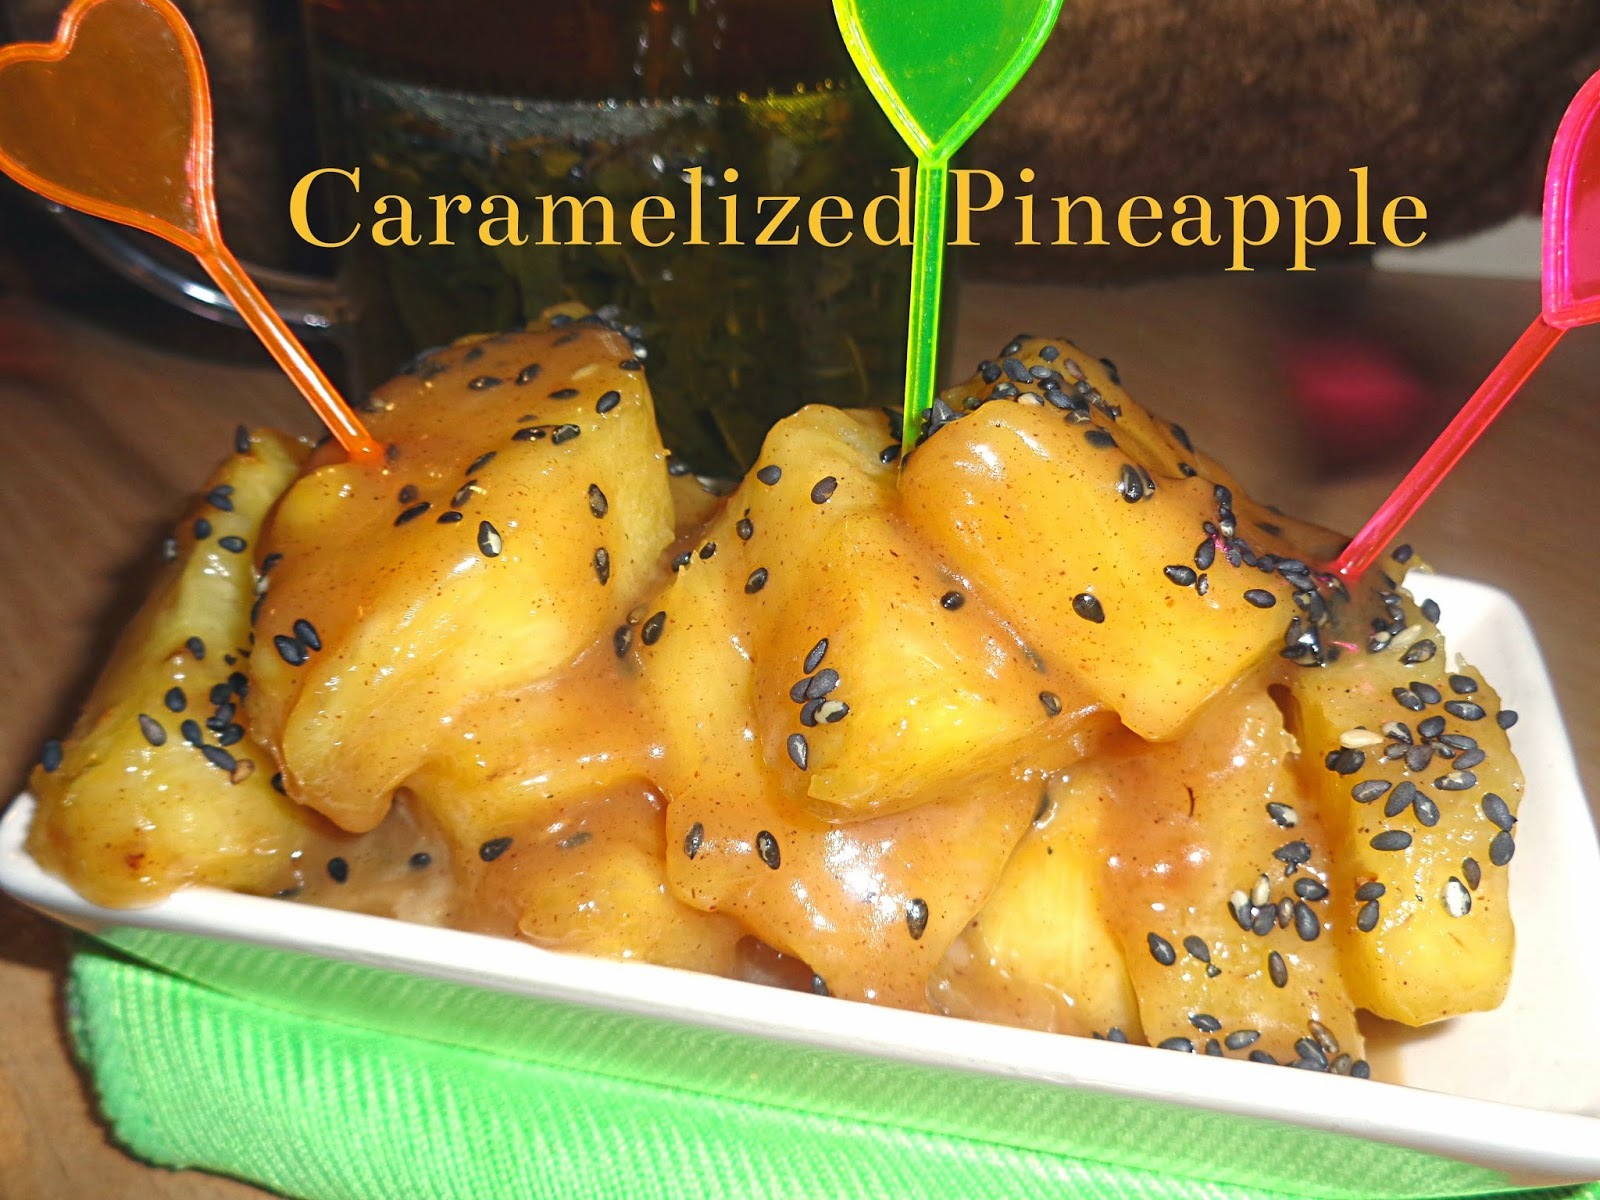 Karmelowy ananas - Caramelized Pineapple